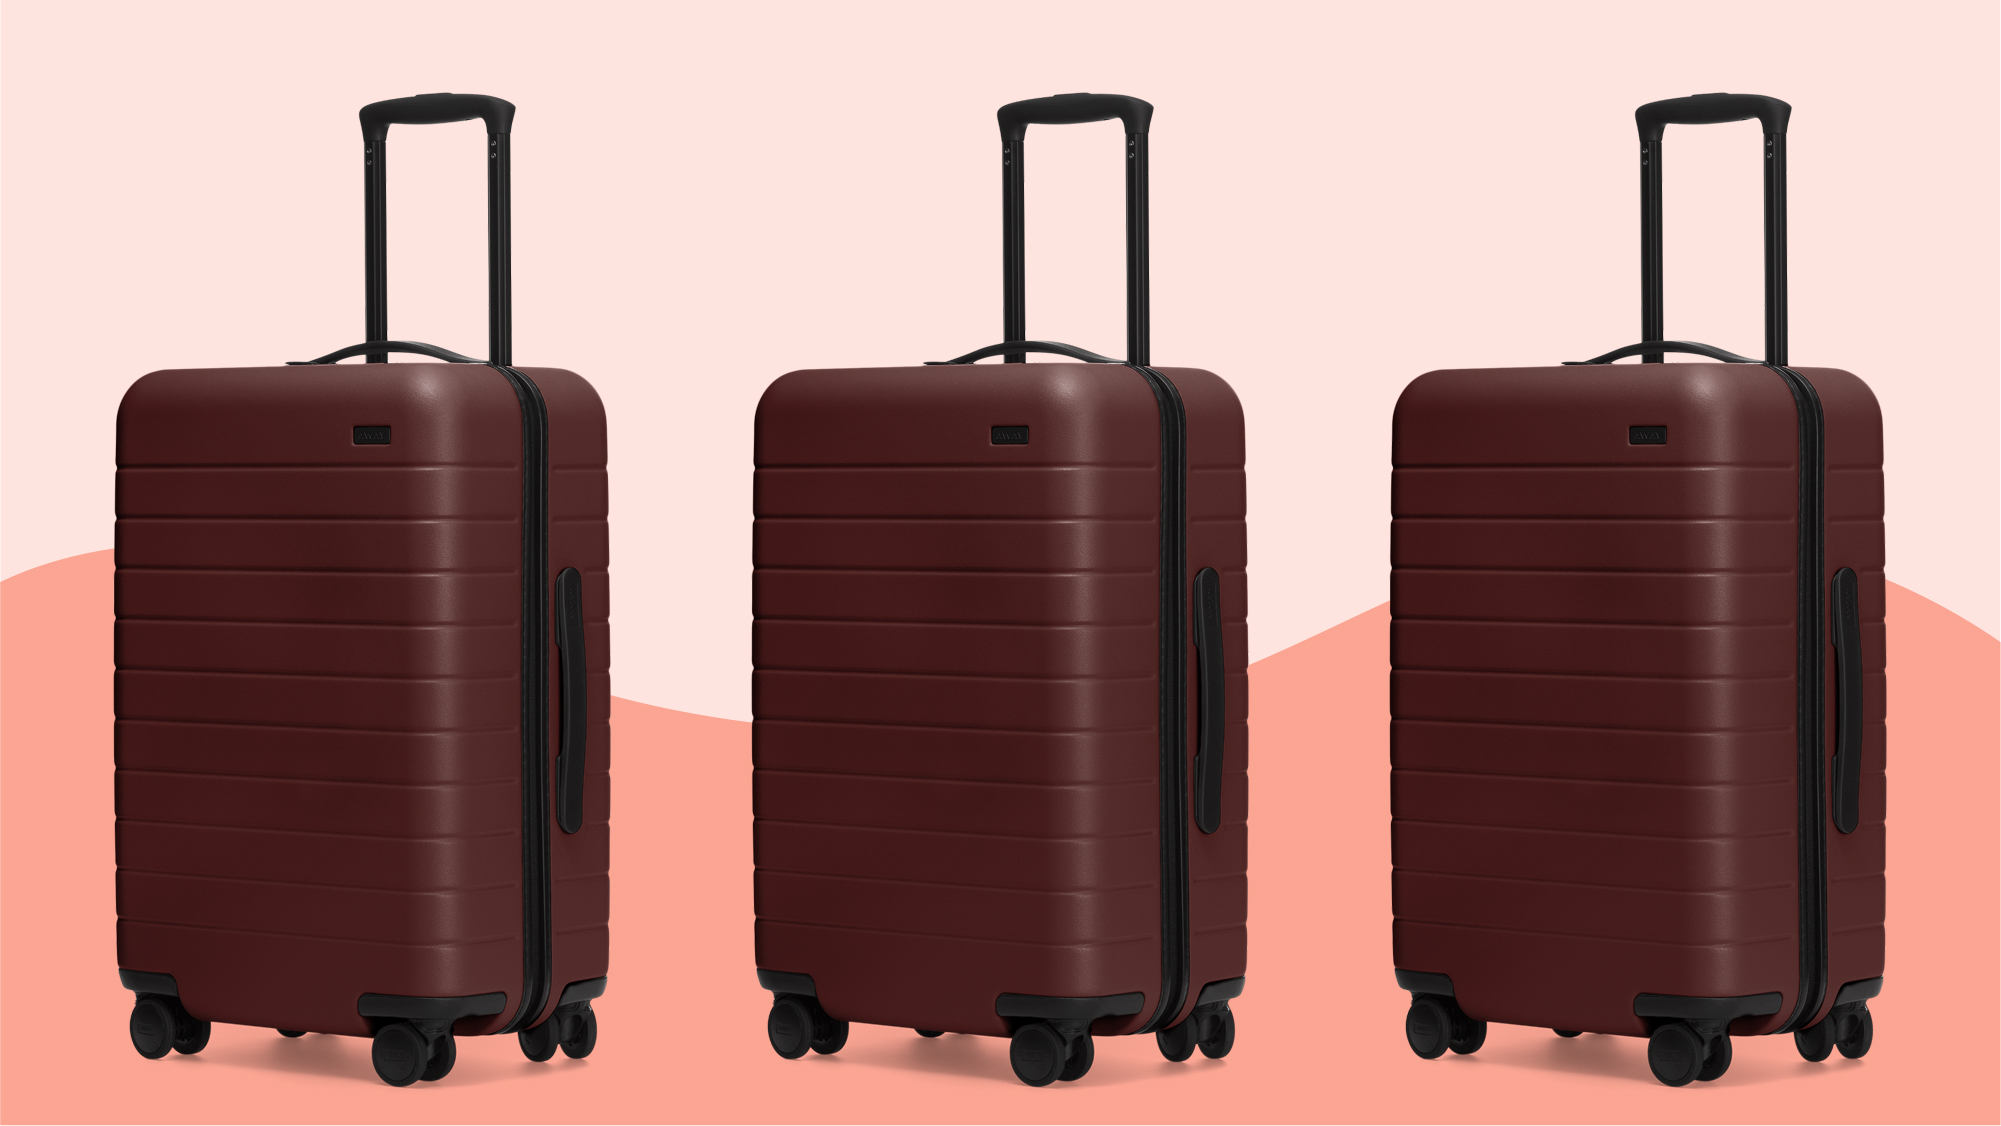 Away luggage bags